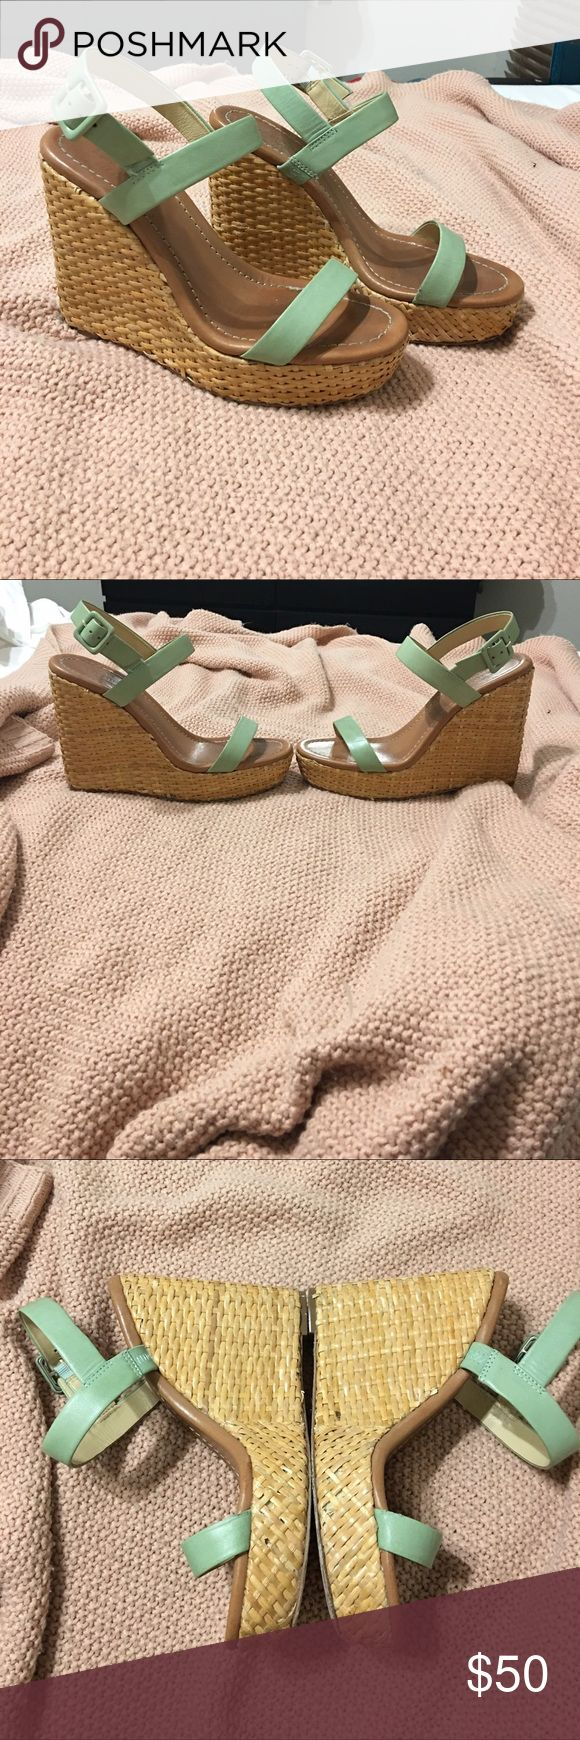 Kate Spade Wedges Celadon green Kate Spade wedges. Good condition. Minor damage to the bamboo wedge can be seen in photos. Essential spring element! kate spade Shoes Wedges